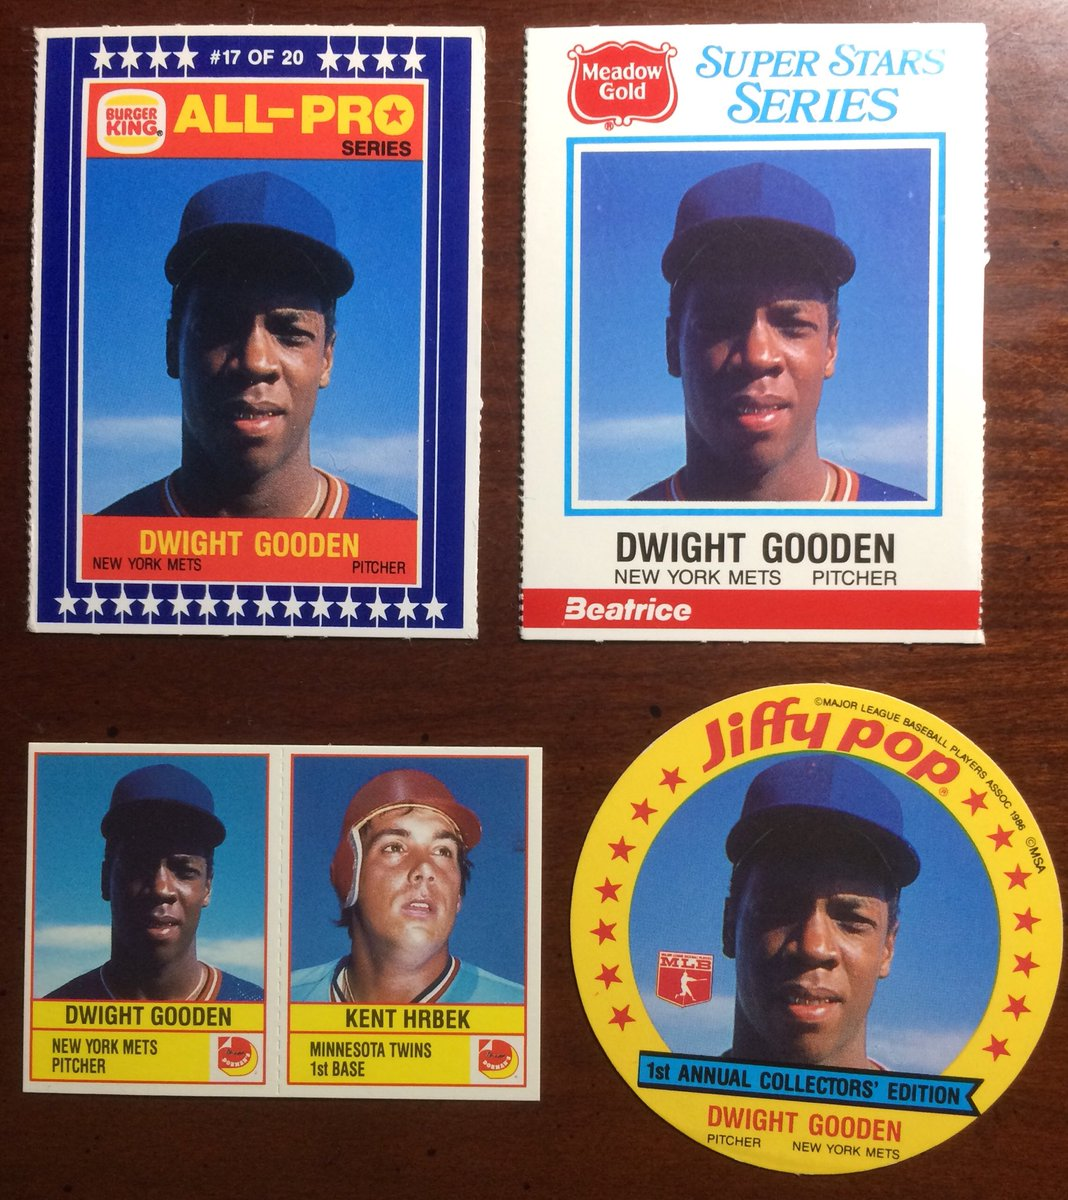 Dwight Gooden Collector On Twitter This Image Was Popular In 1986